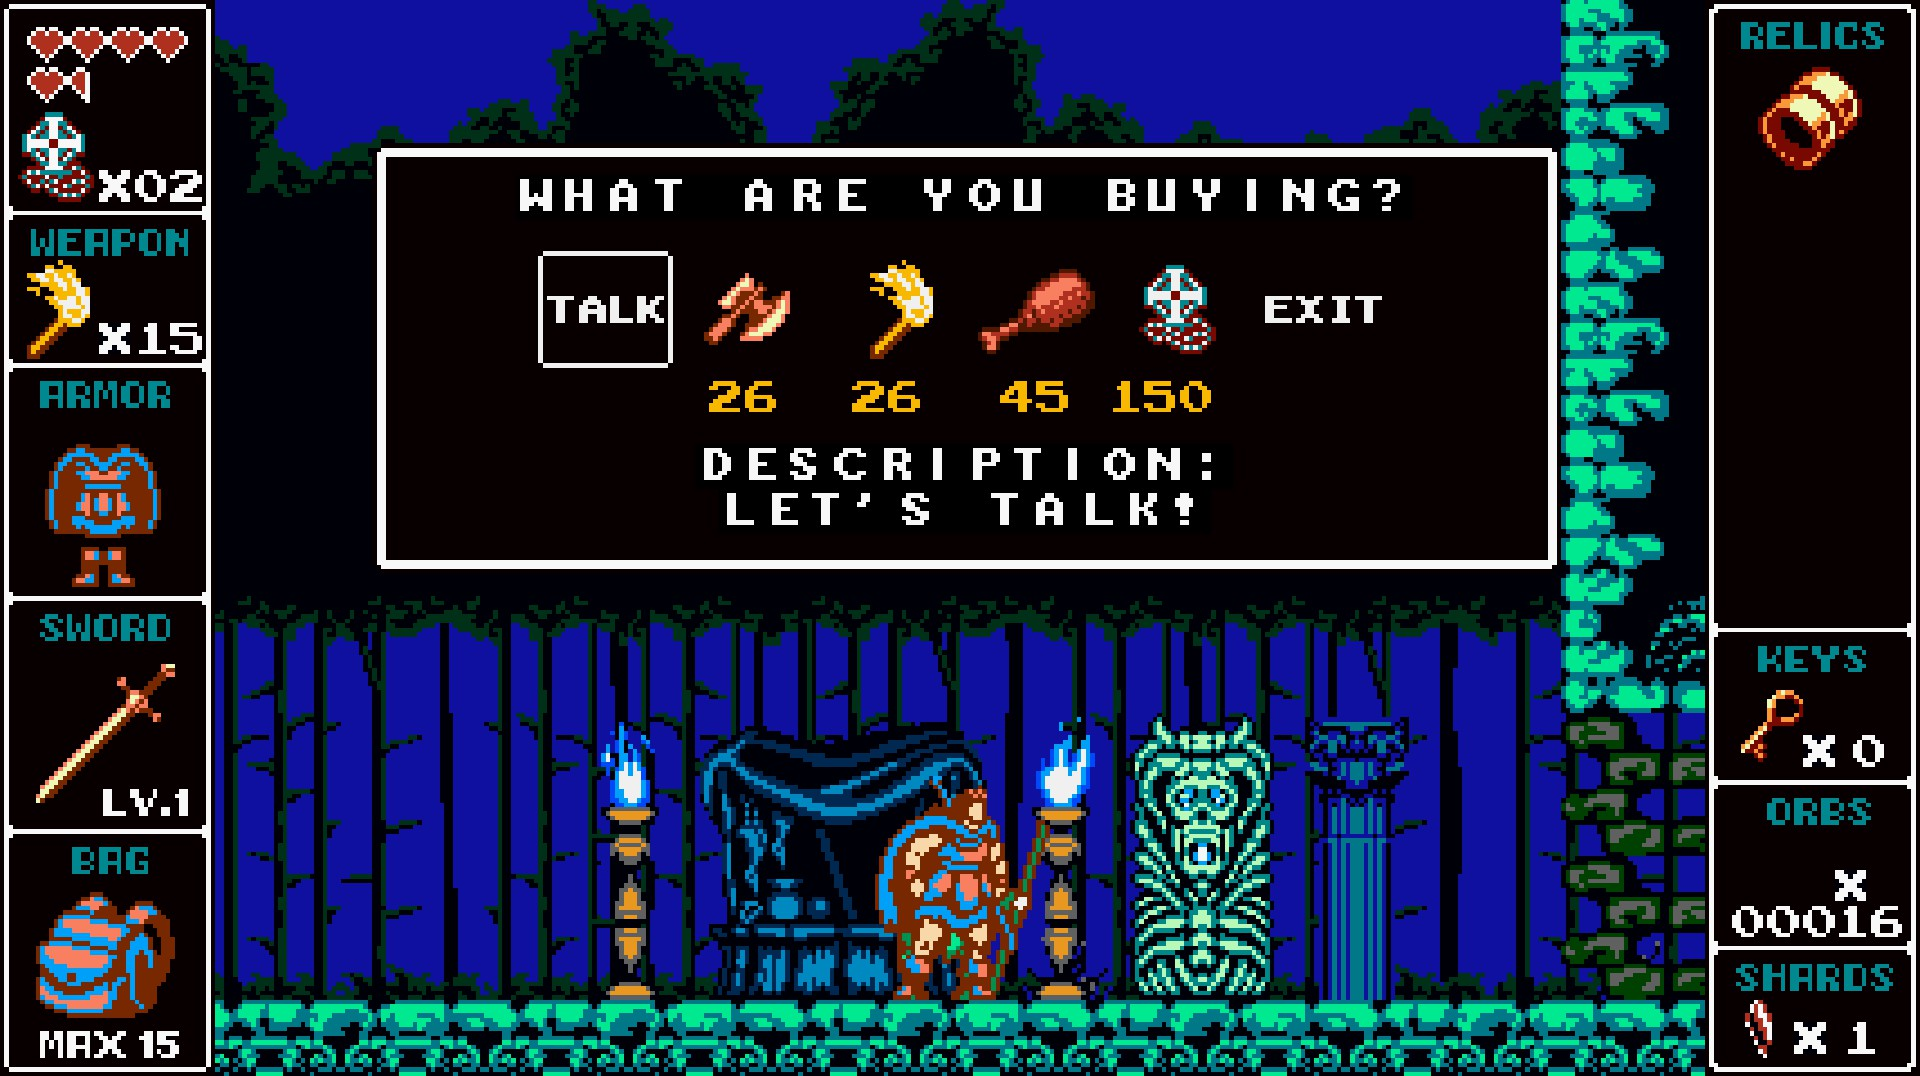 This vendor is kind of a jerk. He can get around and procure different useful items without much difficulty it seems and he increases the price as you continue buying a certain item. (Those freaking life tokens are getting way to spendy.)